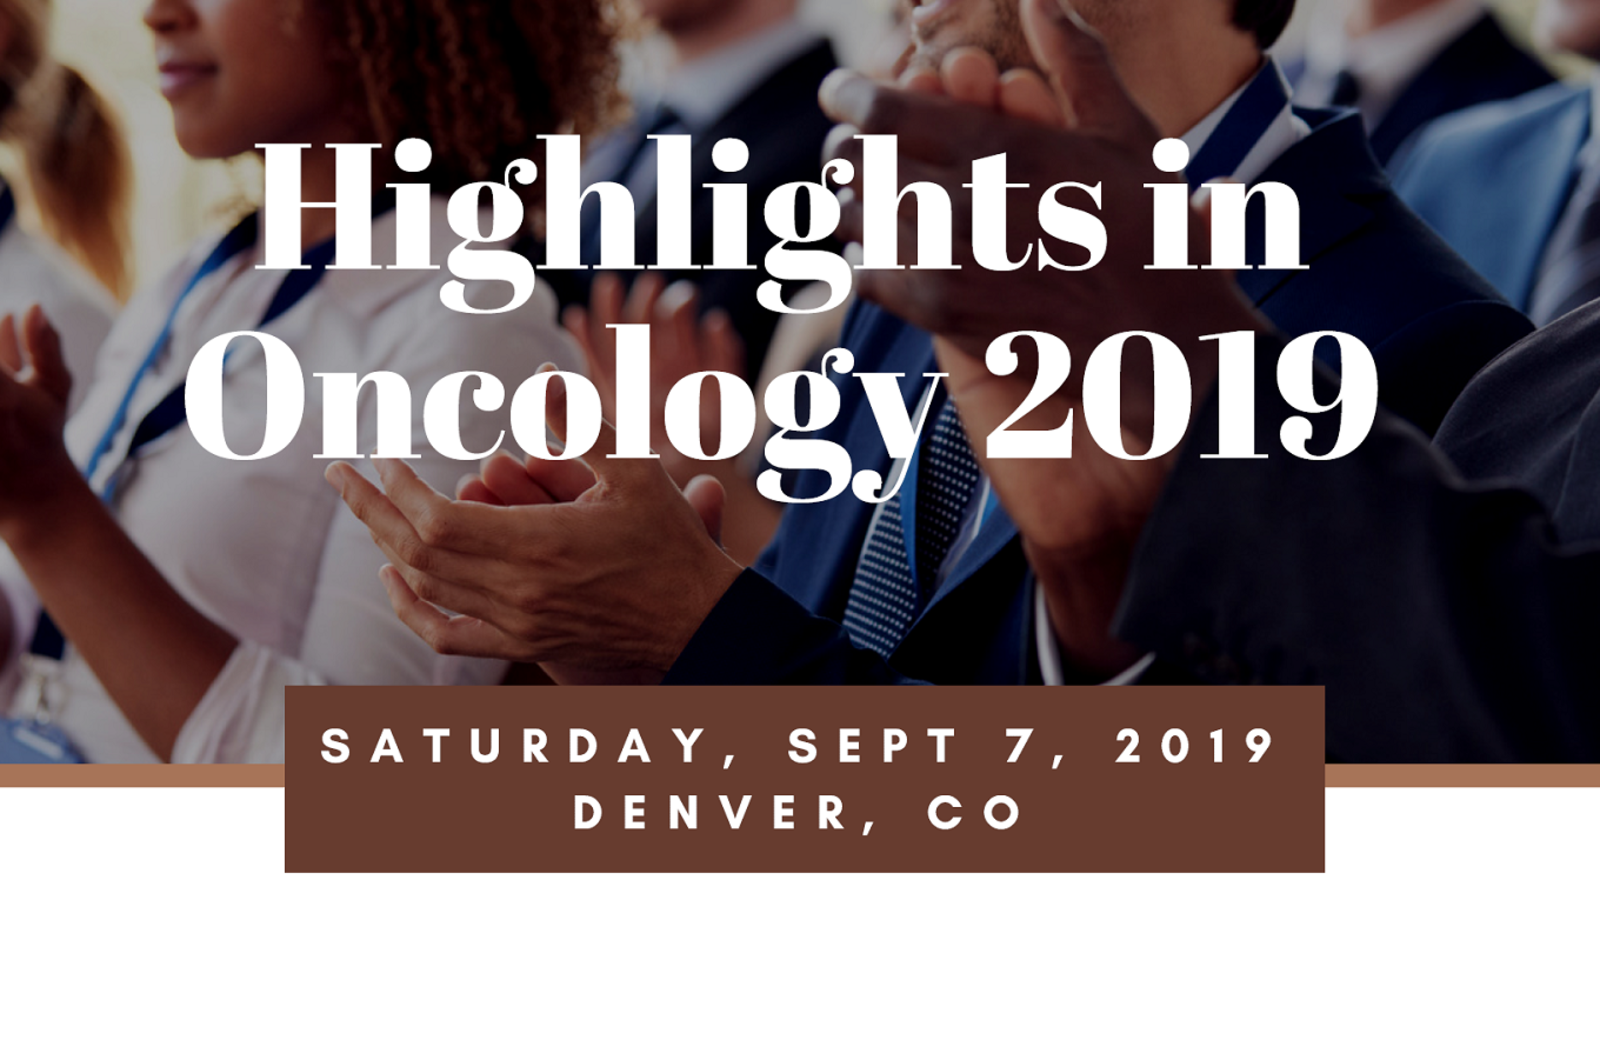 Highlights in Oncology Denver